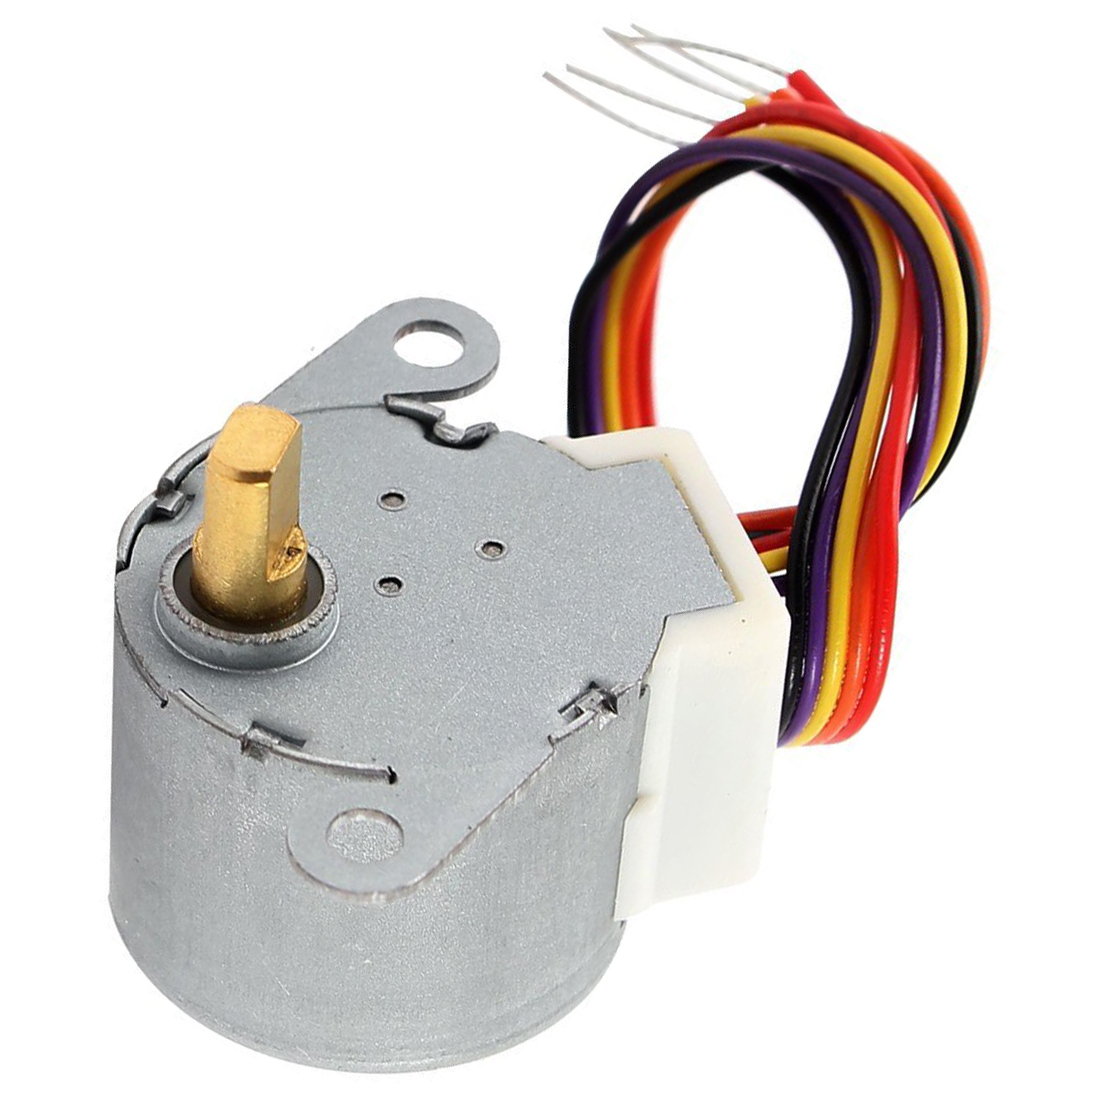 BMBY Hot <font><b>DC</b></font> <font><b>12V</b></font> CNC Reducing Stepping Stepper Motor 0.6A 10oz.in <font><b>24BYJ48</b></font> Silver image